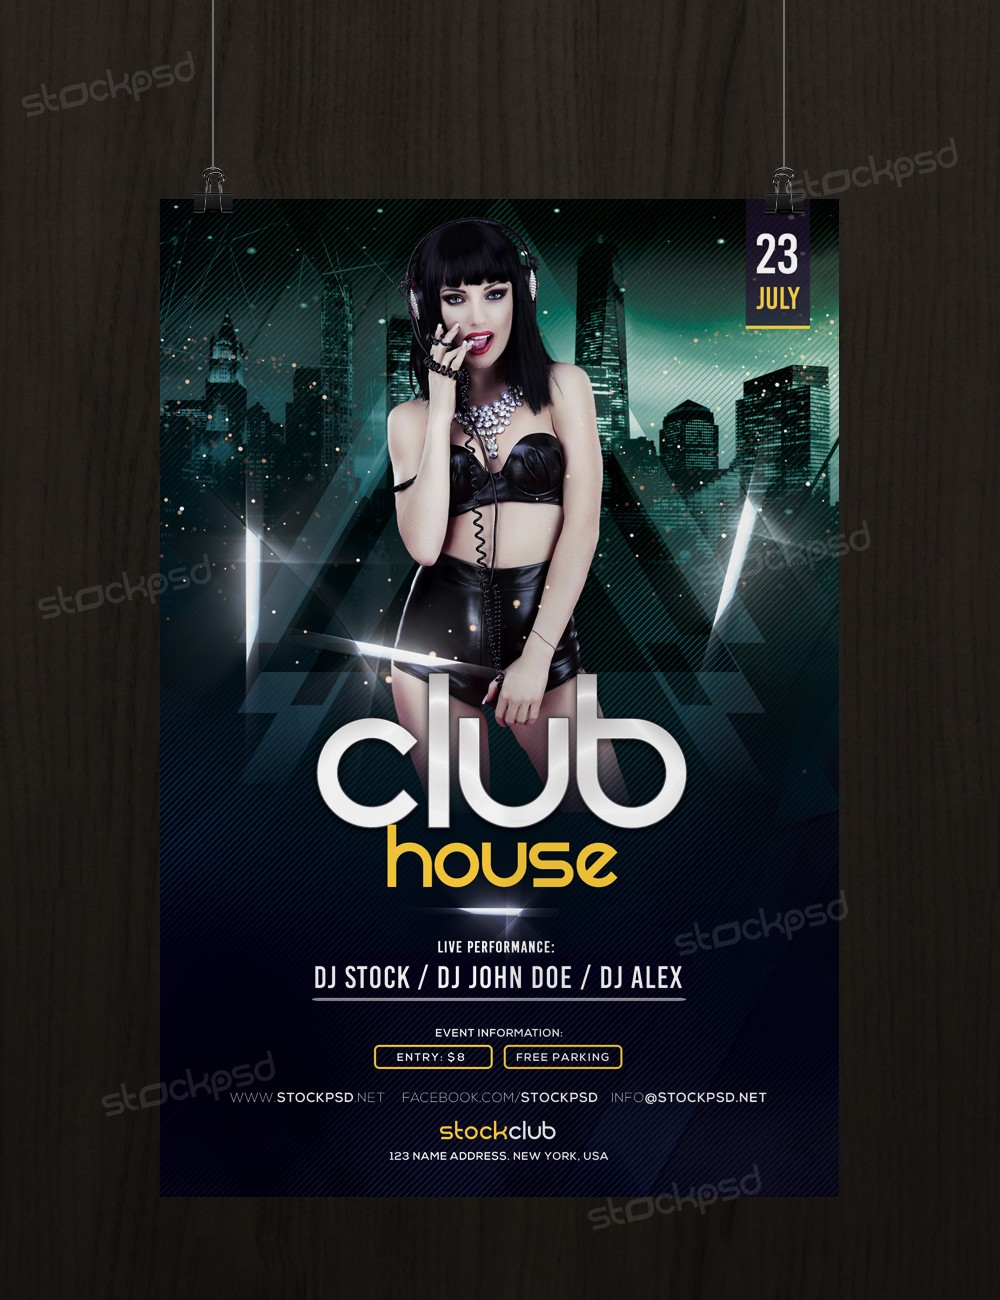 club house psd flyer template stockpsd net invite your guests in your event an amazing flyer template